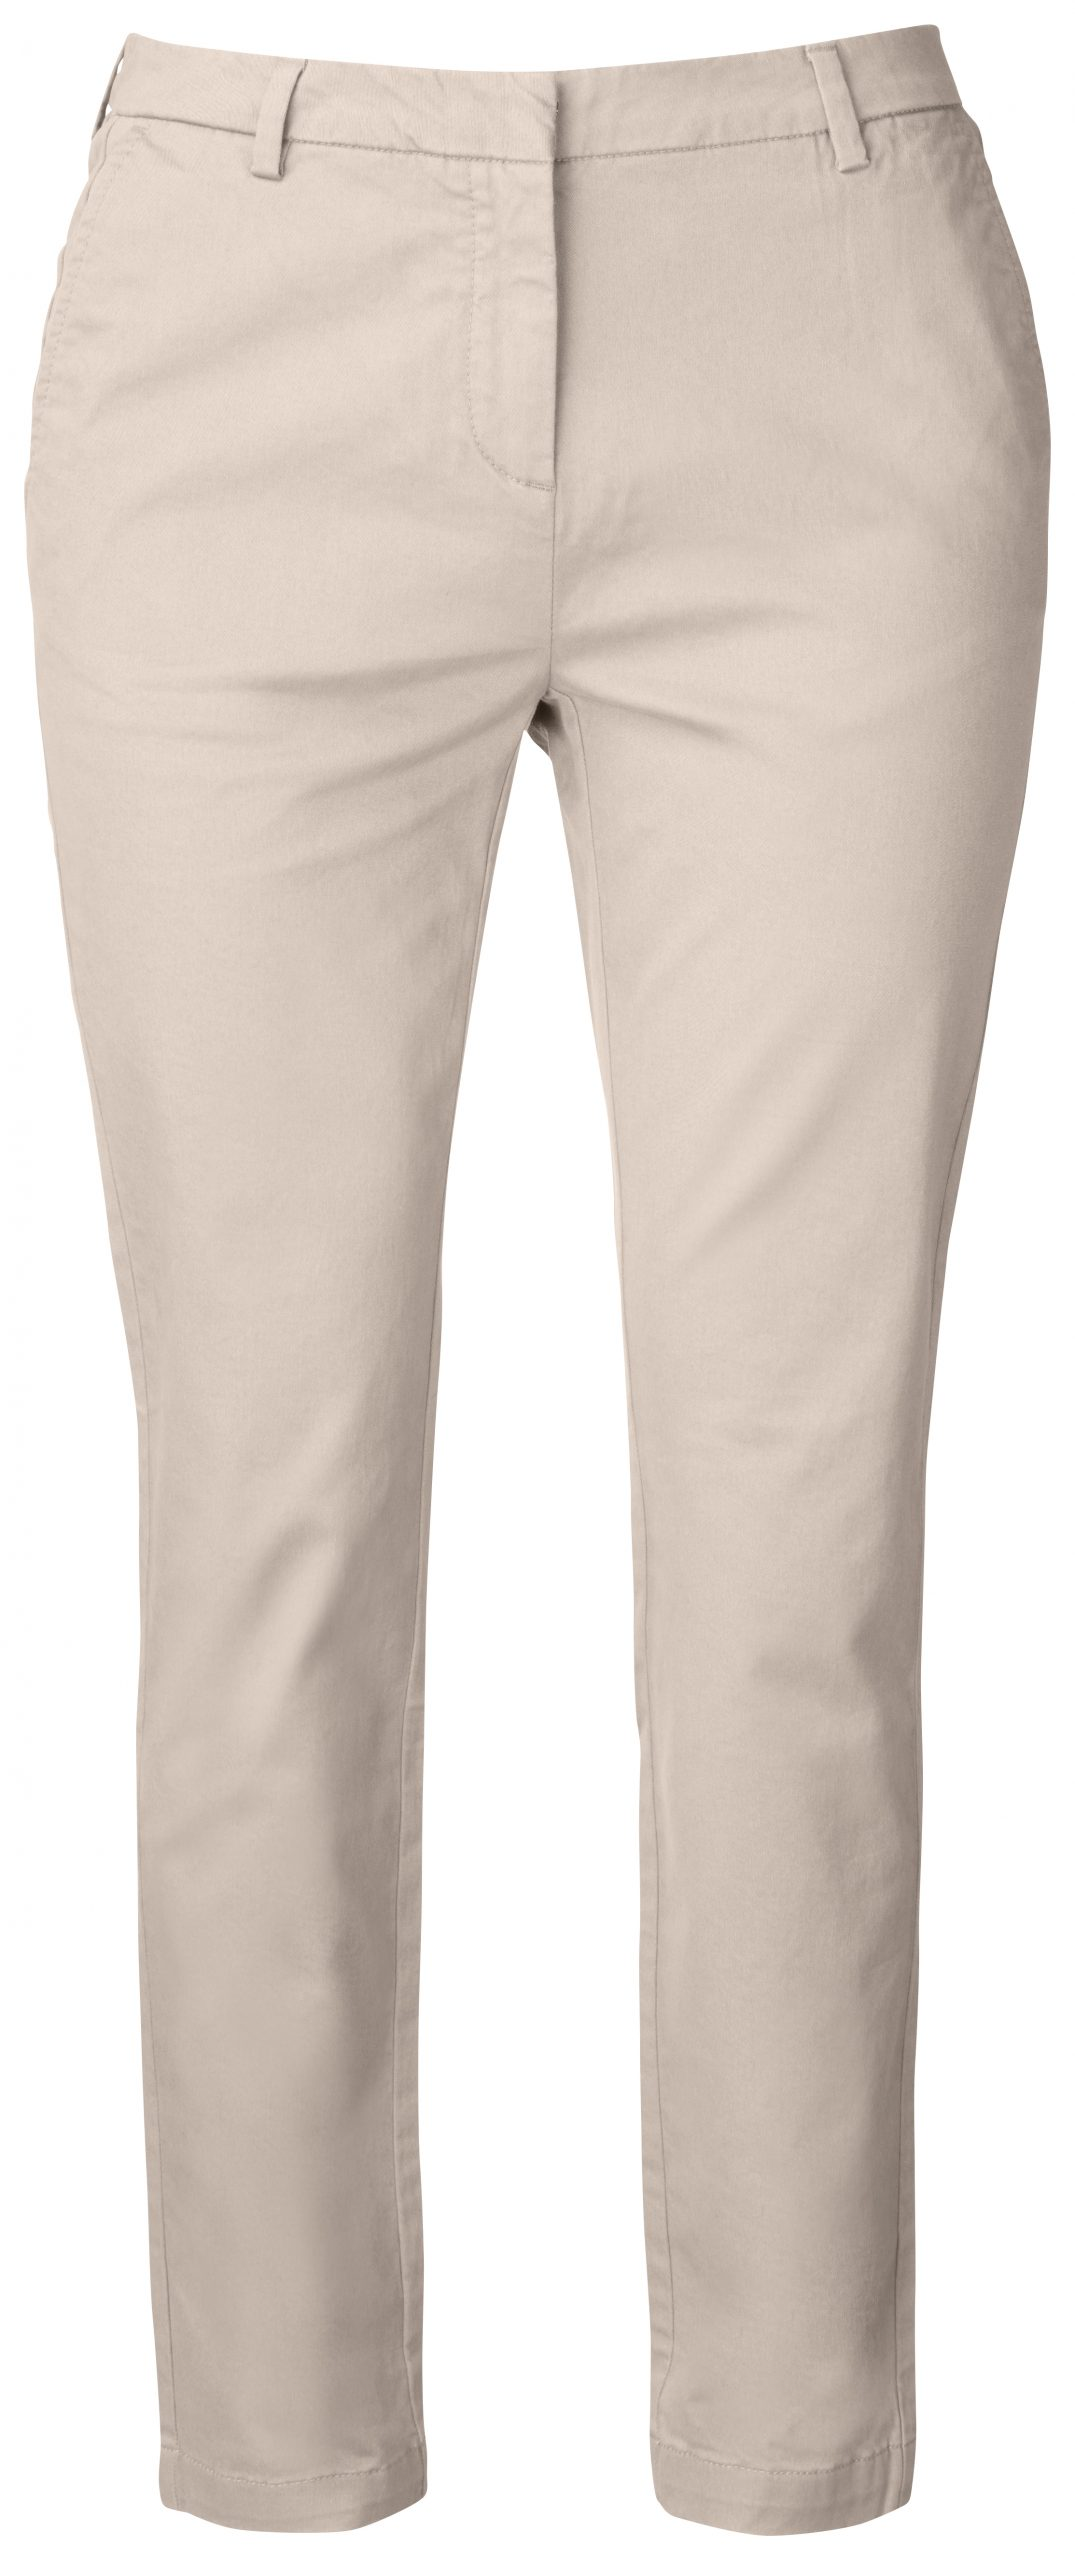 Cutterandbuck Bridgeport Chinos Ladies Beige